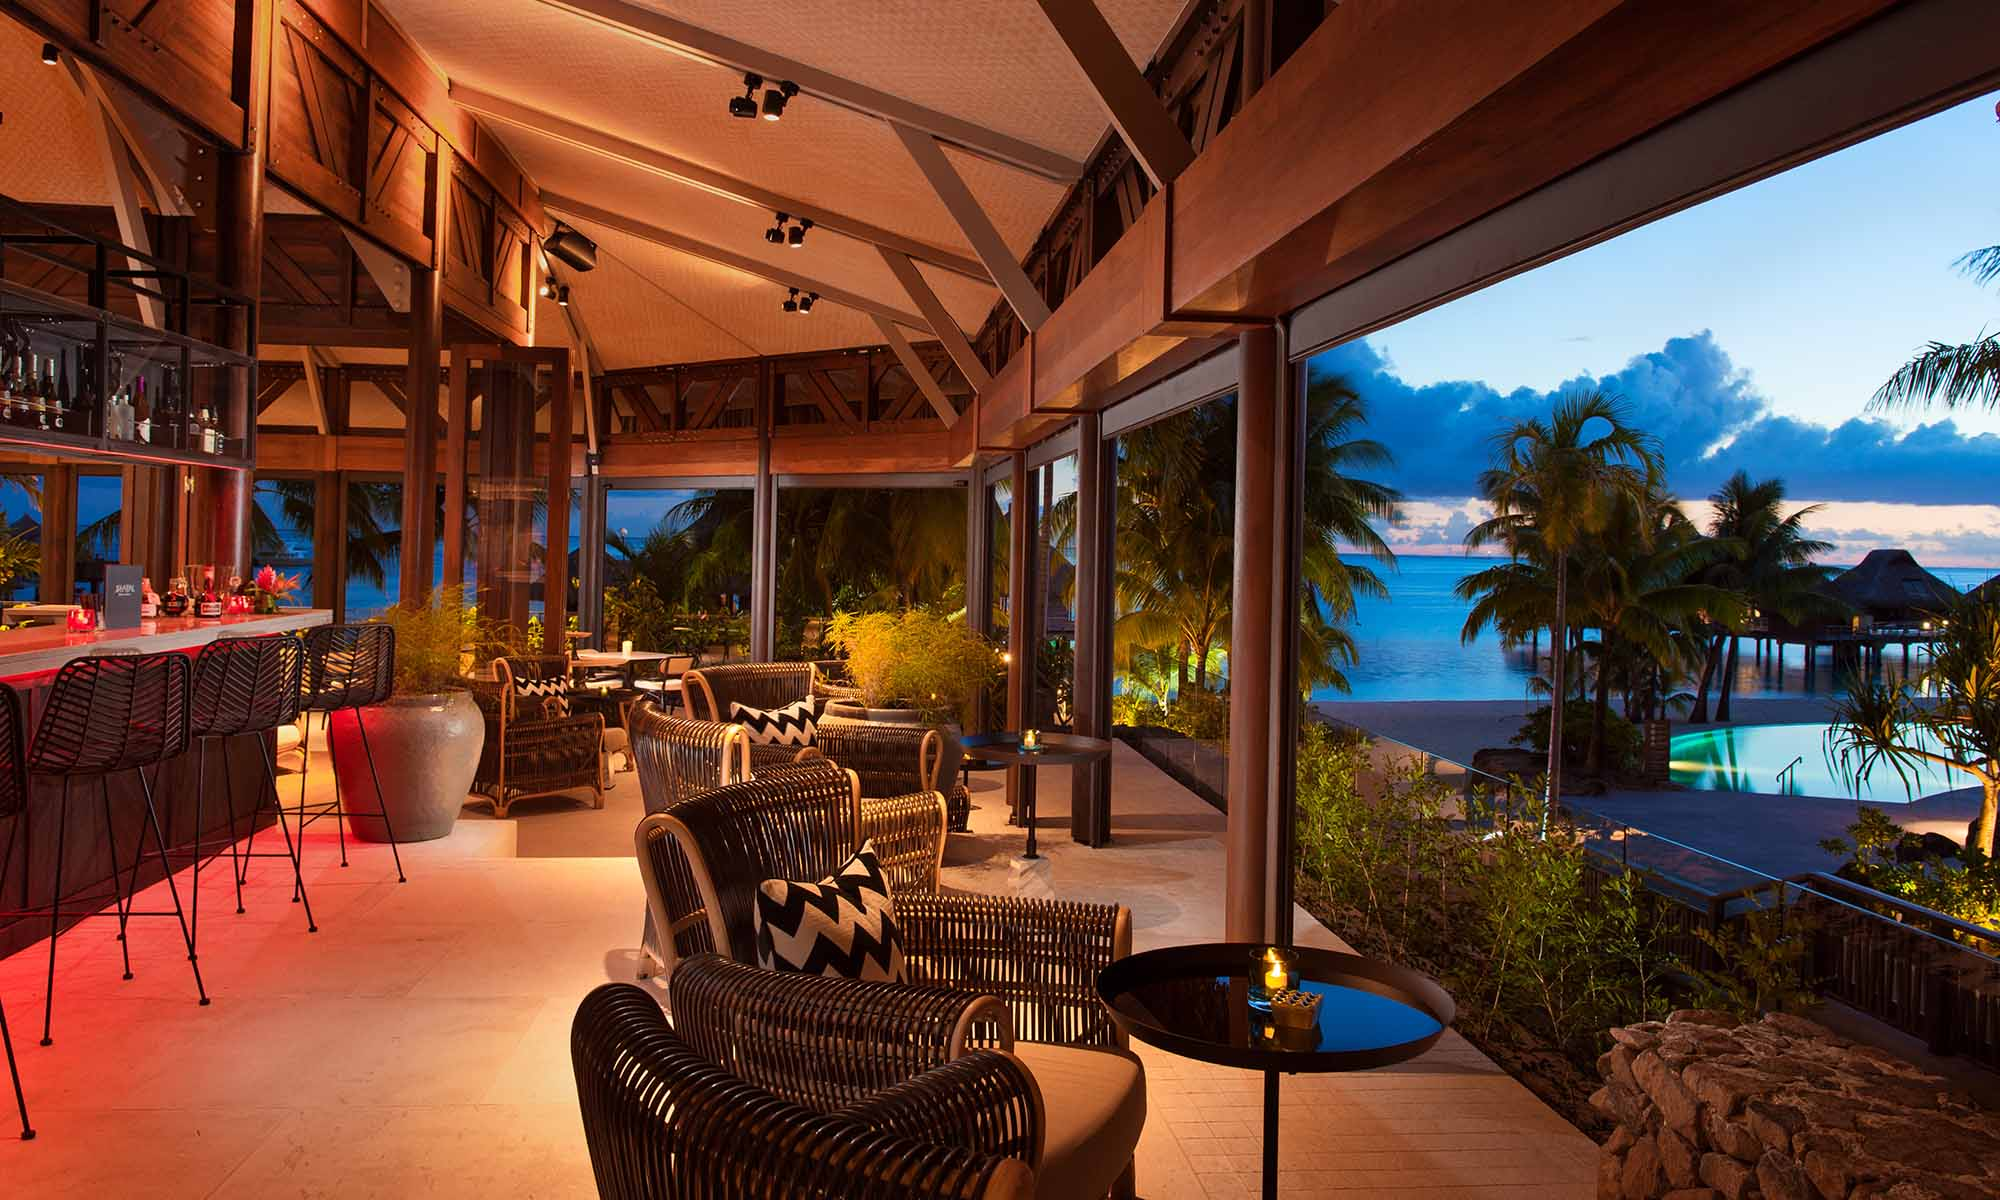 Conrad Bora Bora Nui, Lounge and Wine Bar